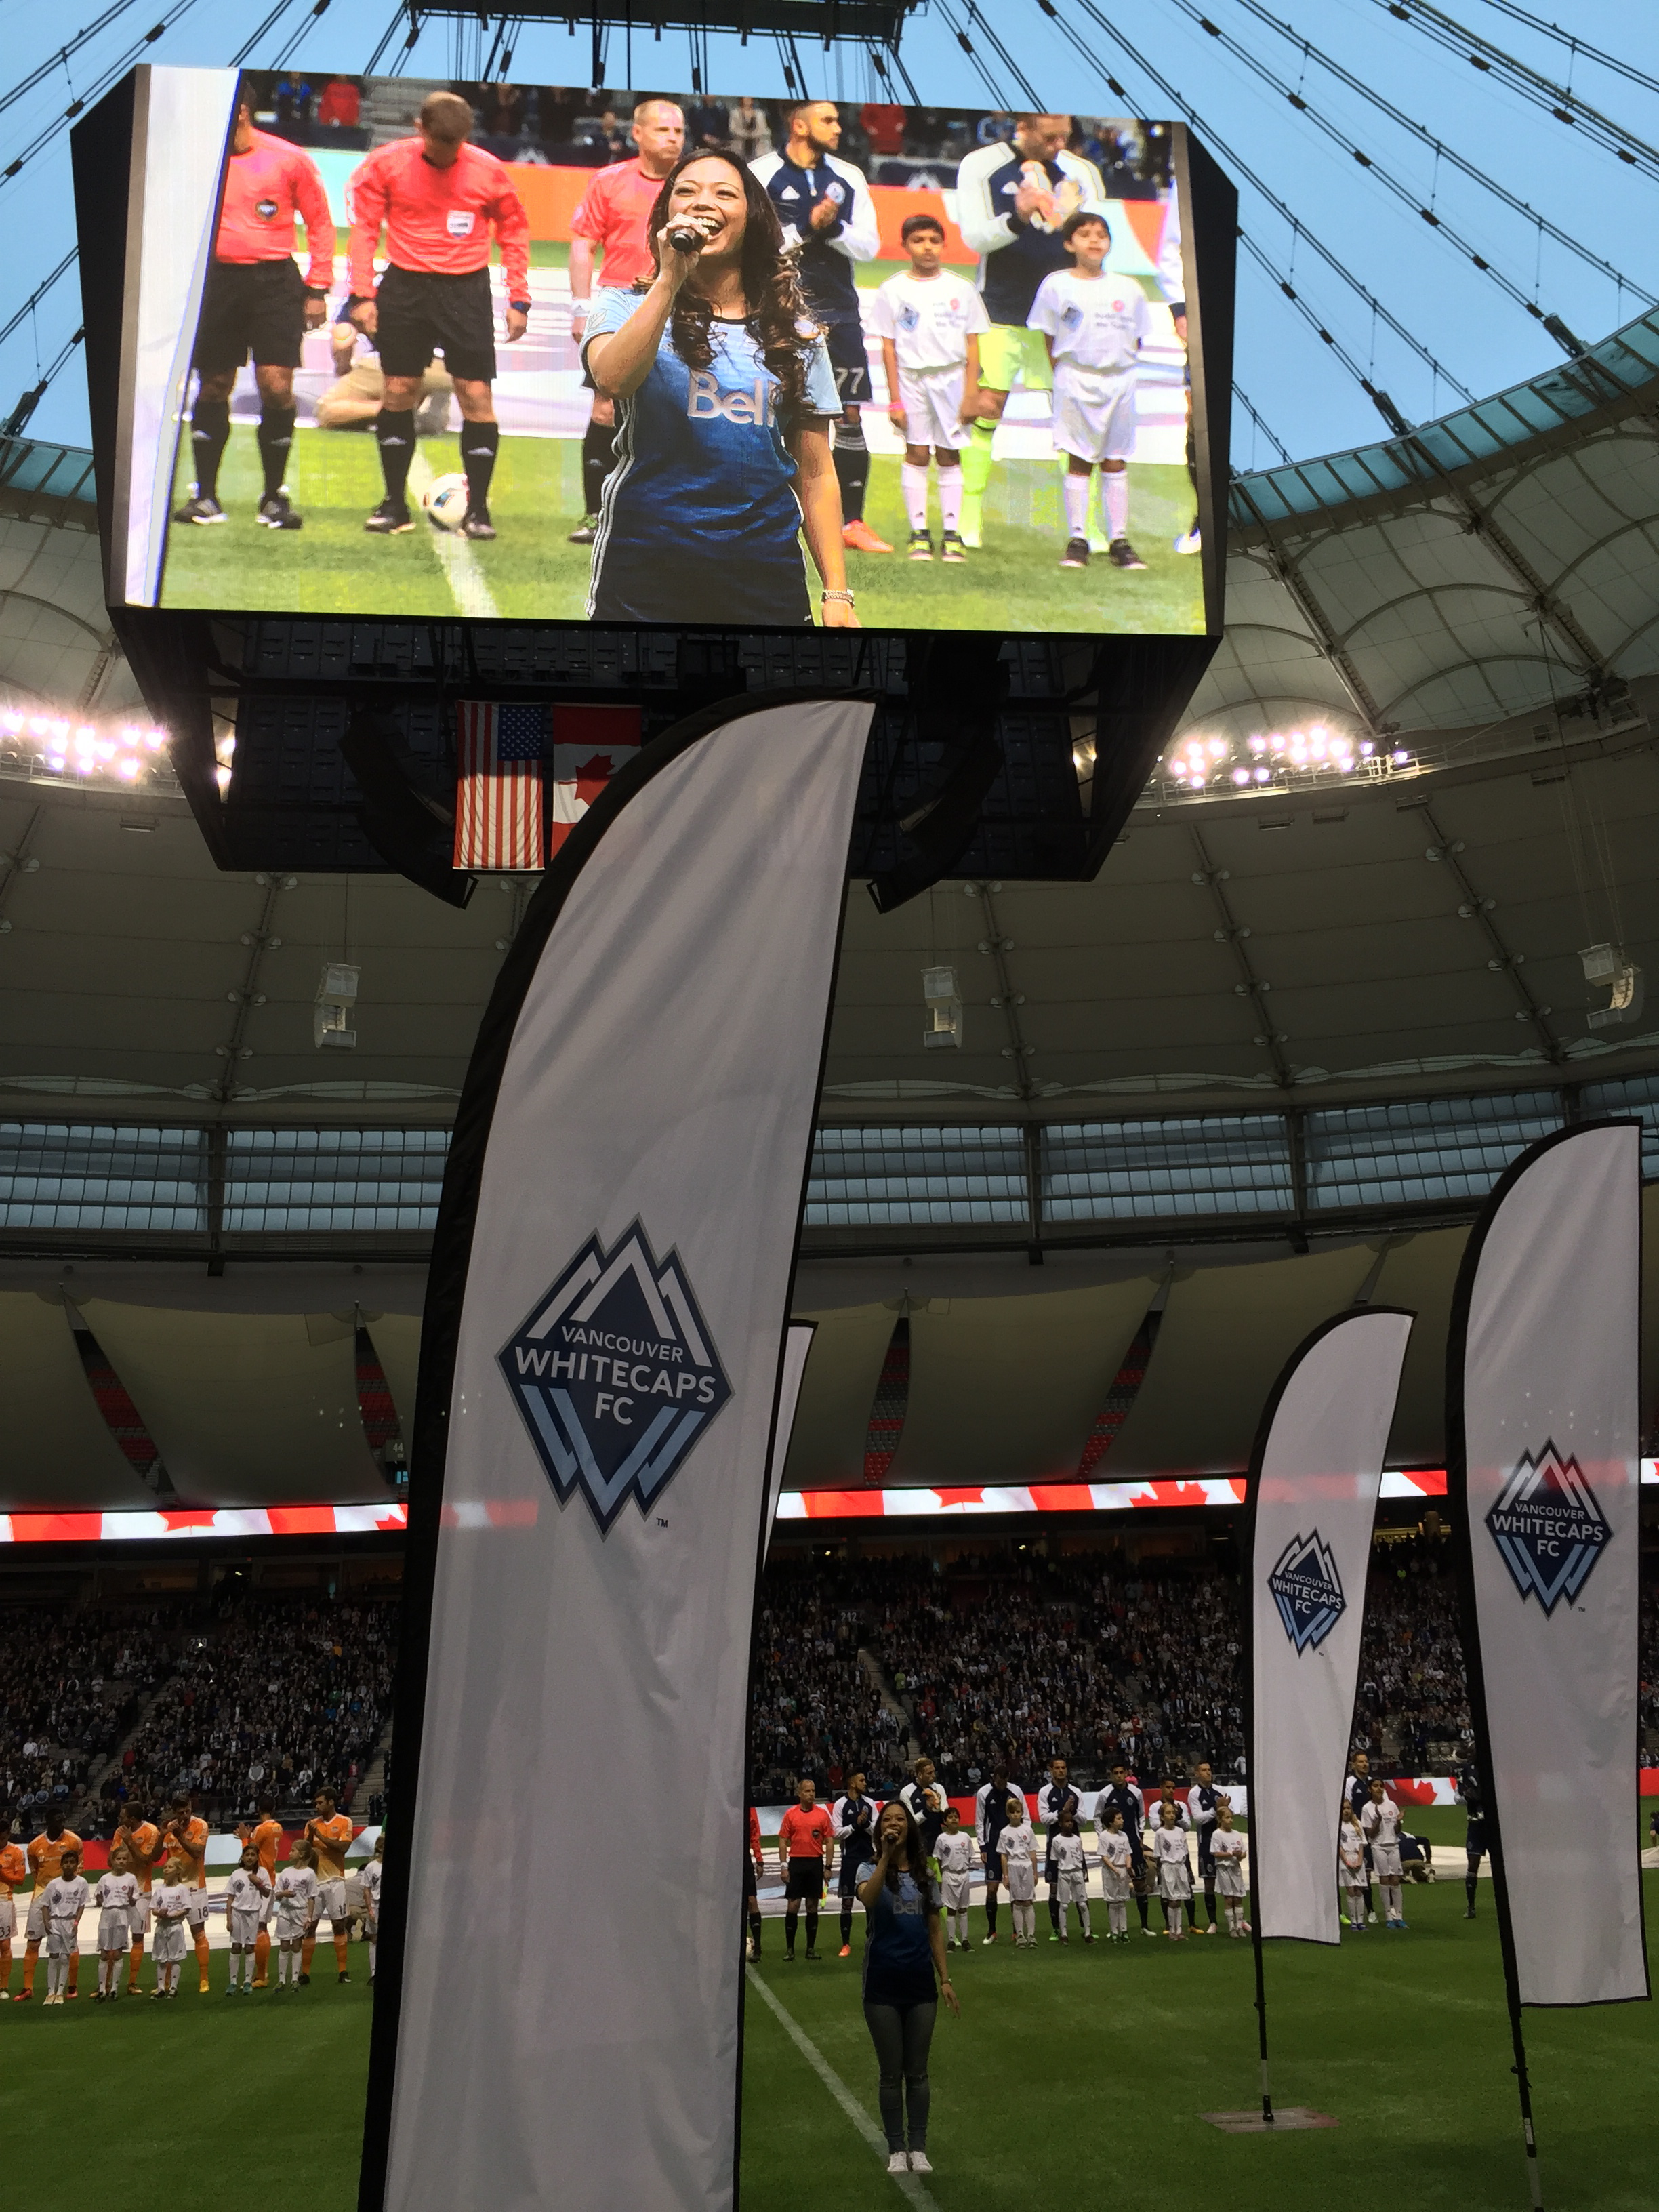 Singing the Canadian & American Anthems at the Vancouver Whitecaps vs. Houston Dynamo MLS Game, at BC Place in Vancouver